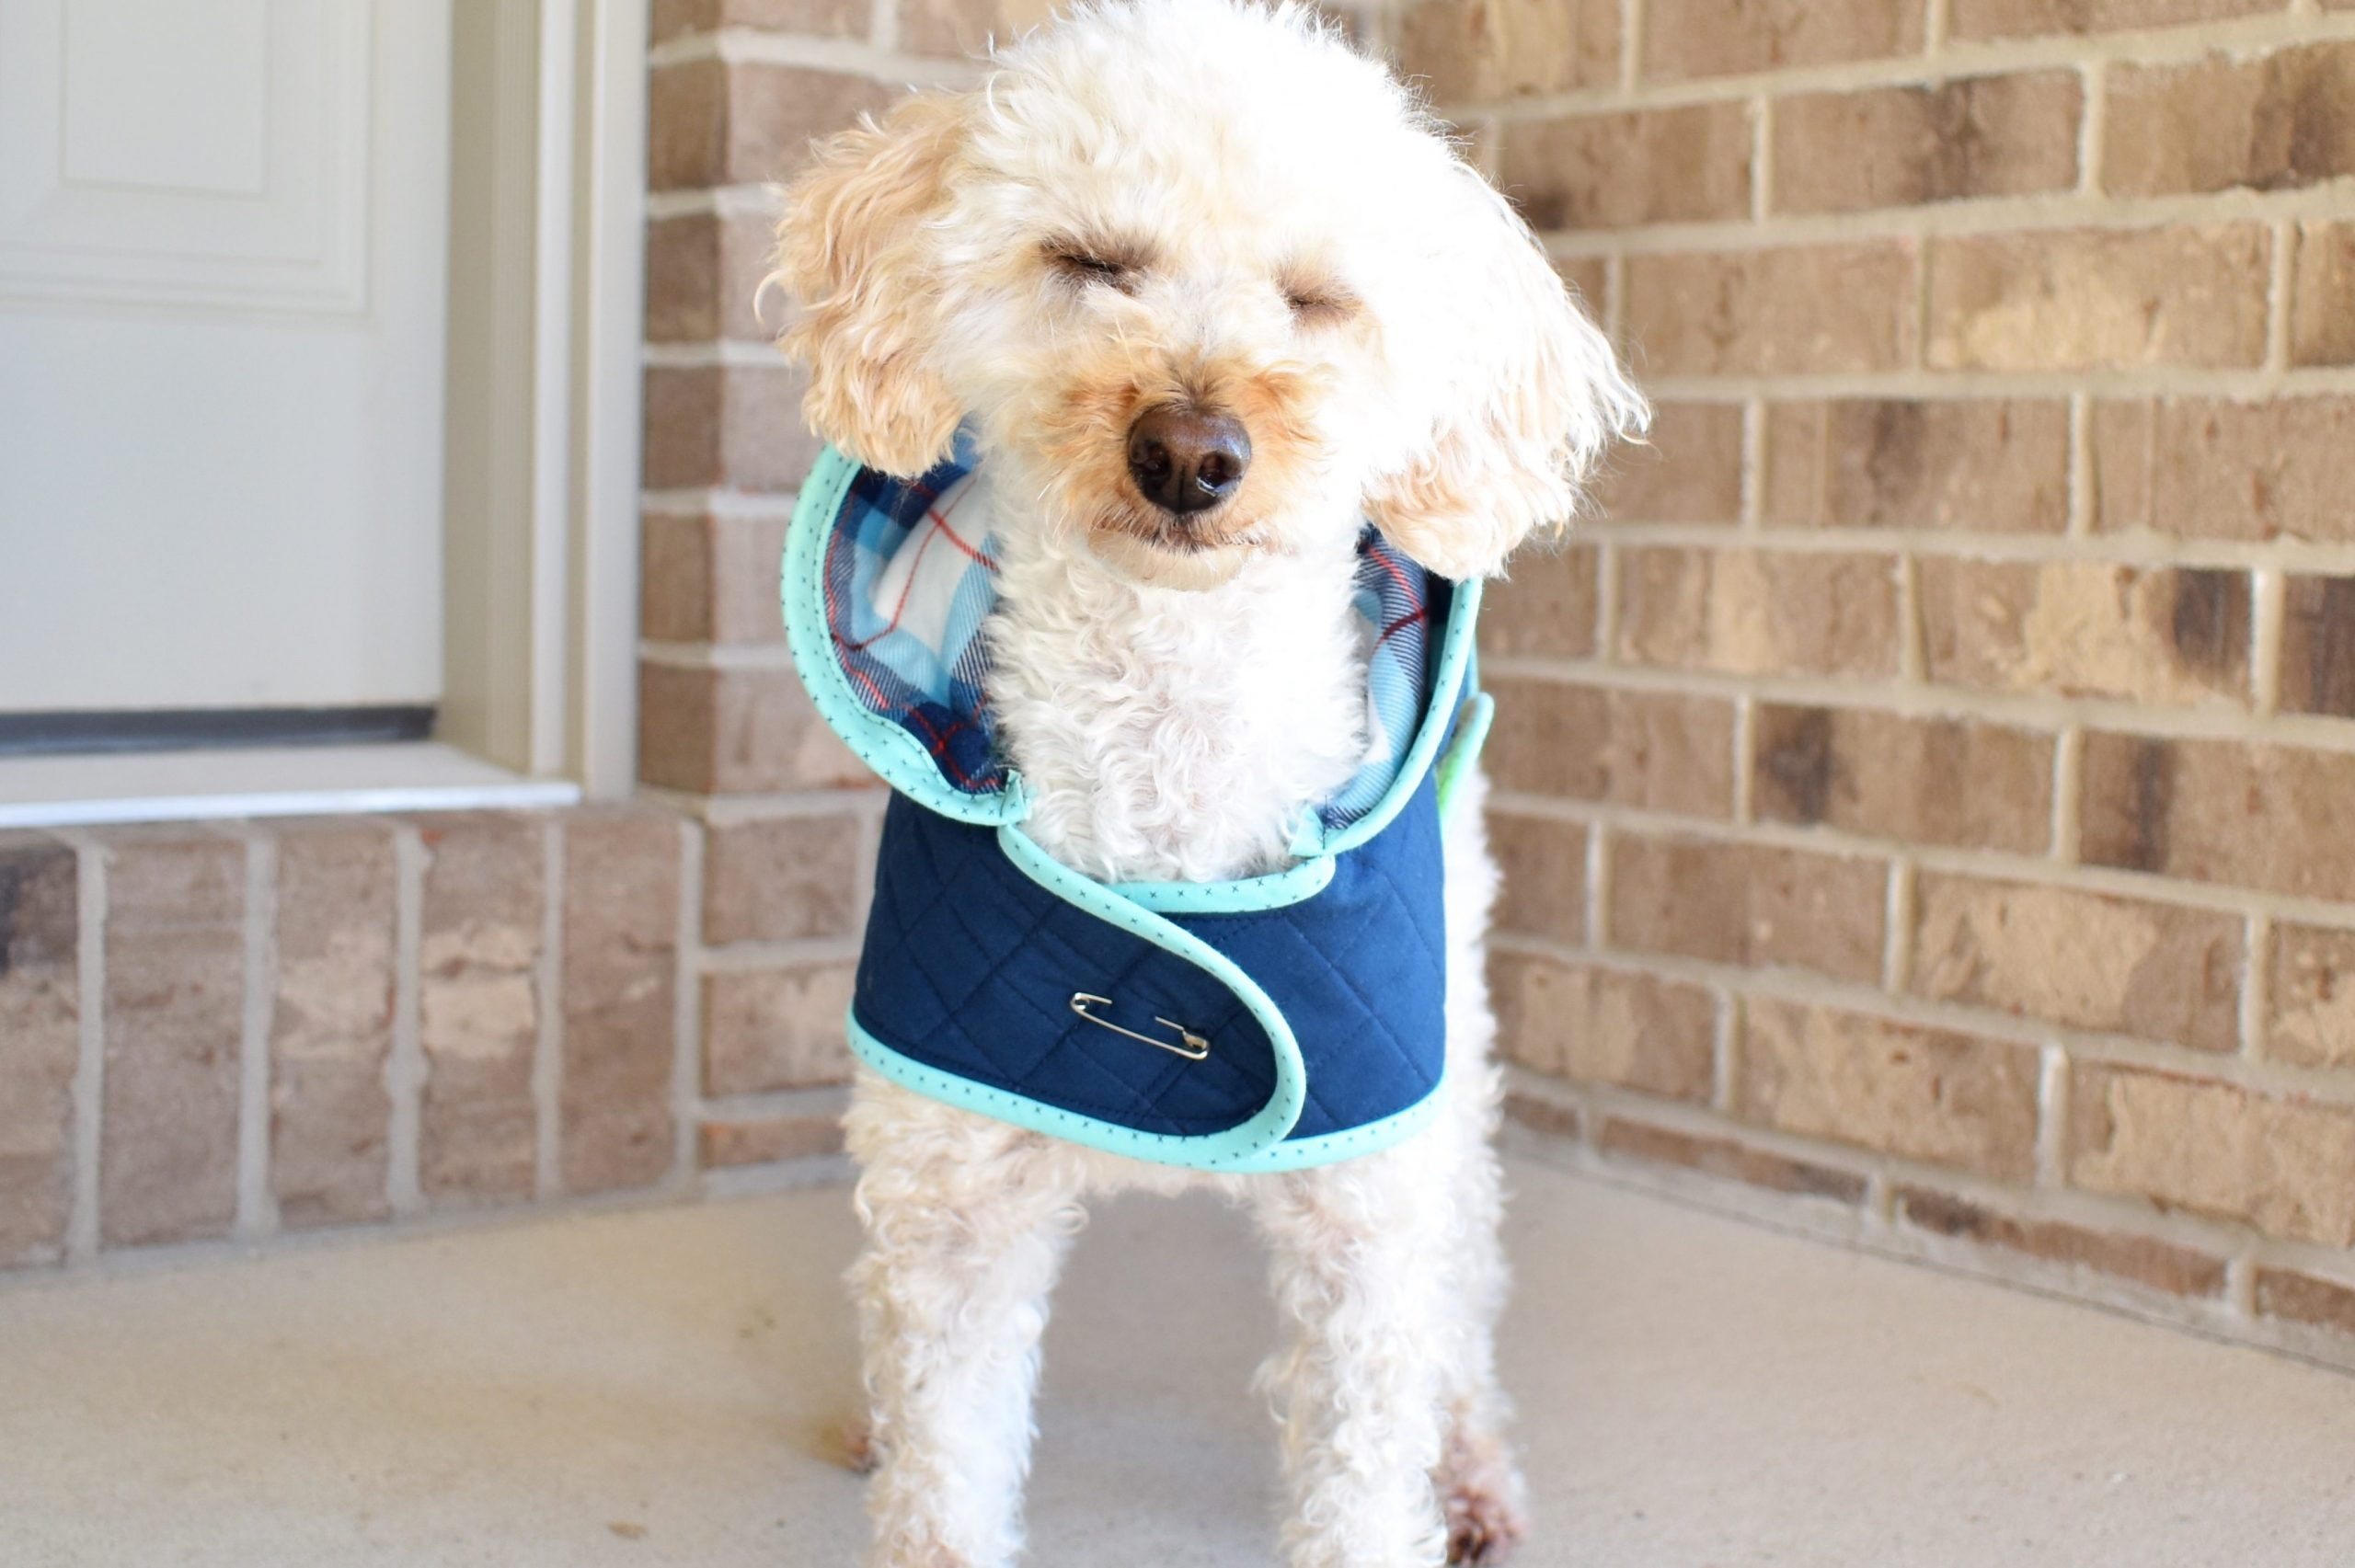 A dog quilted jacket